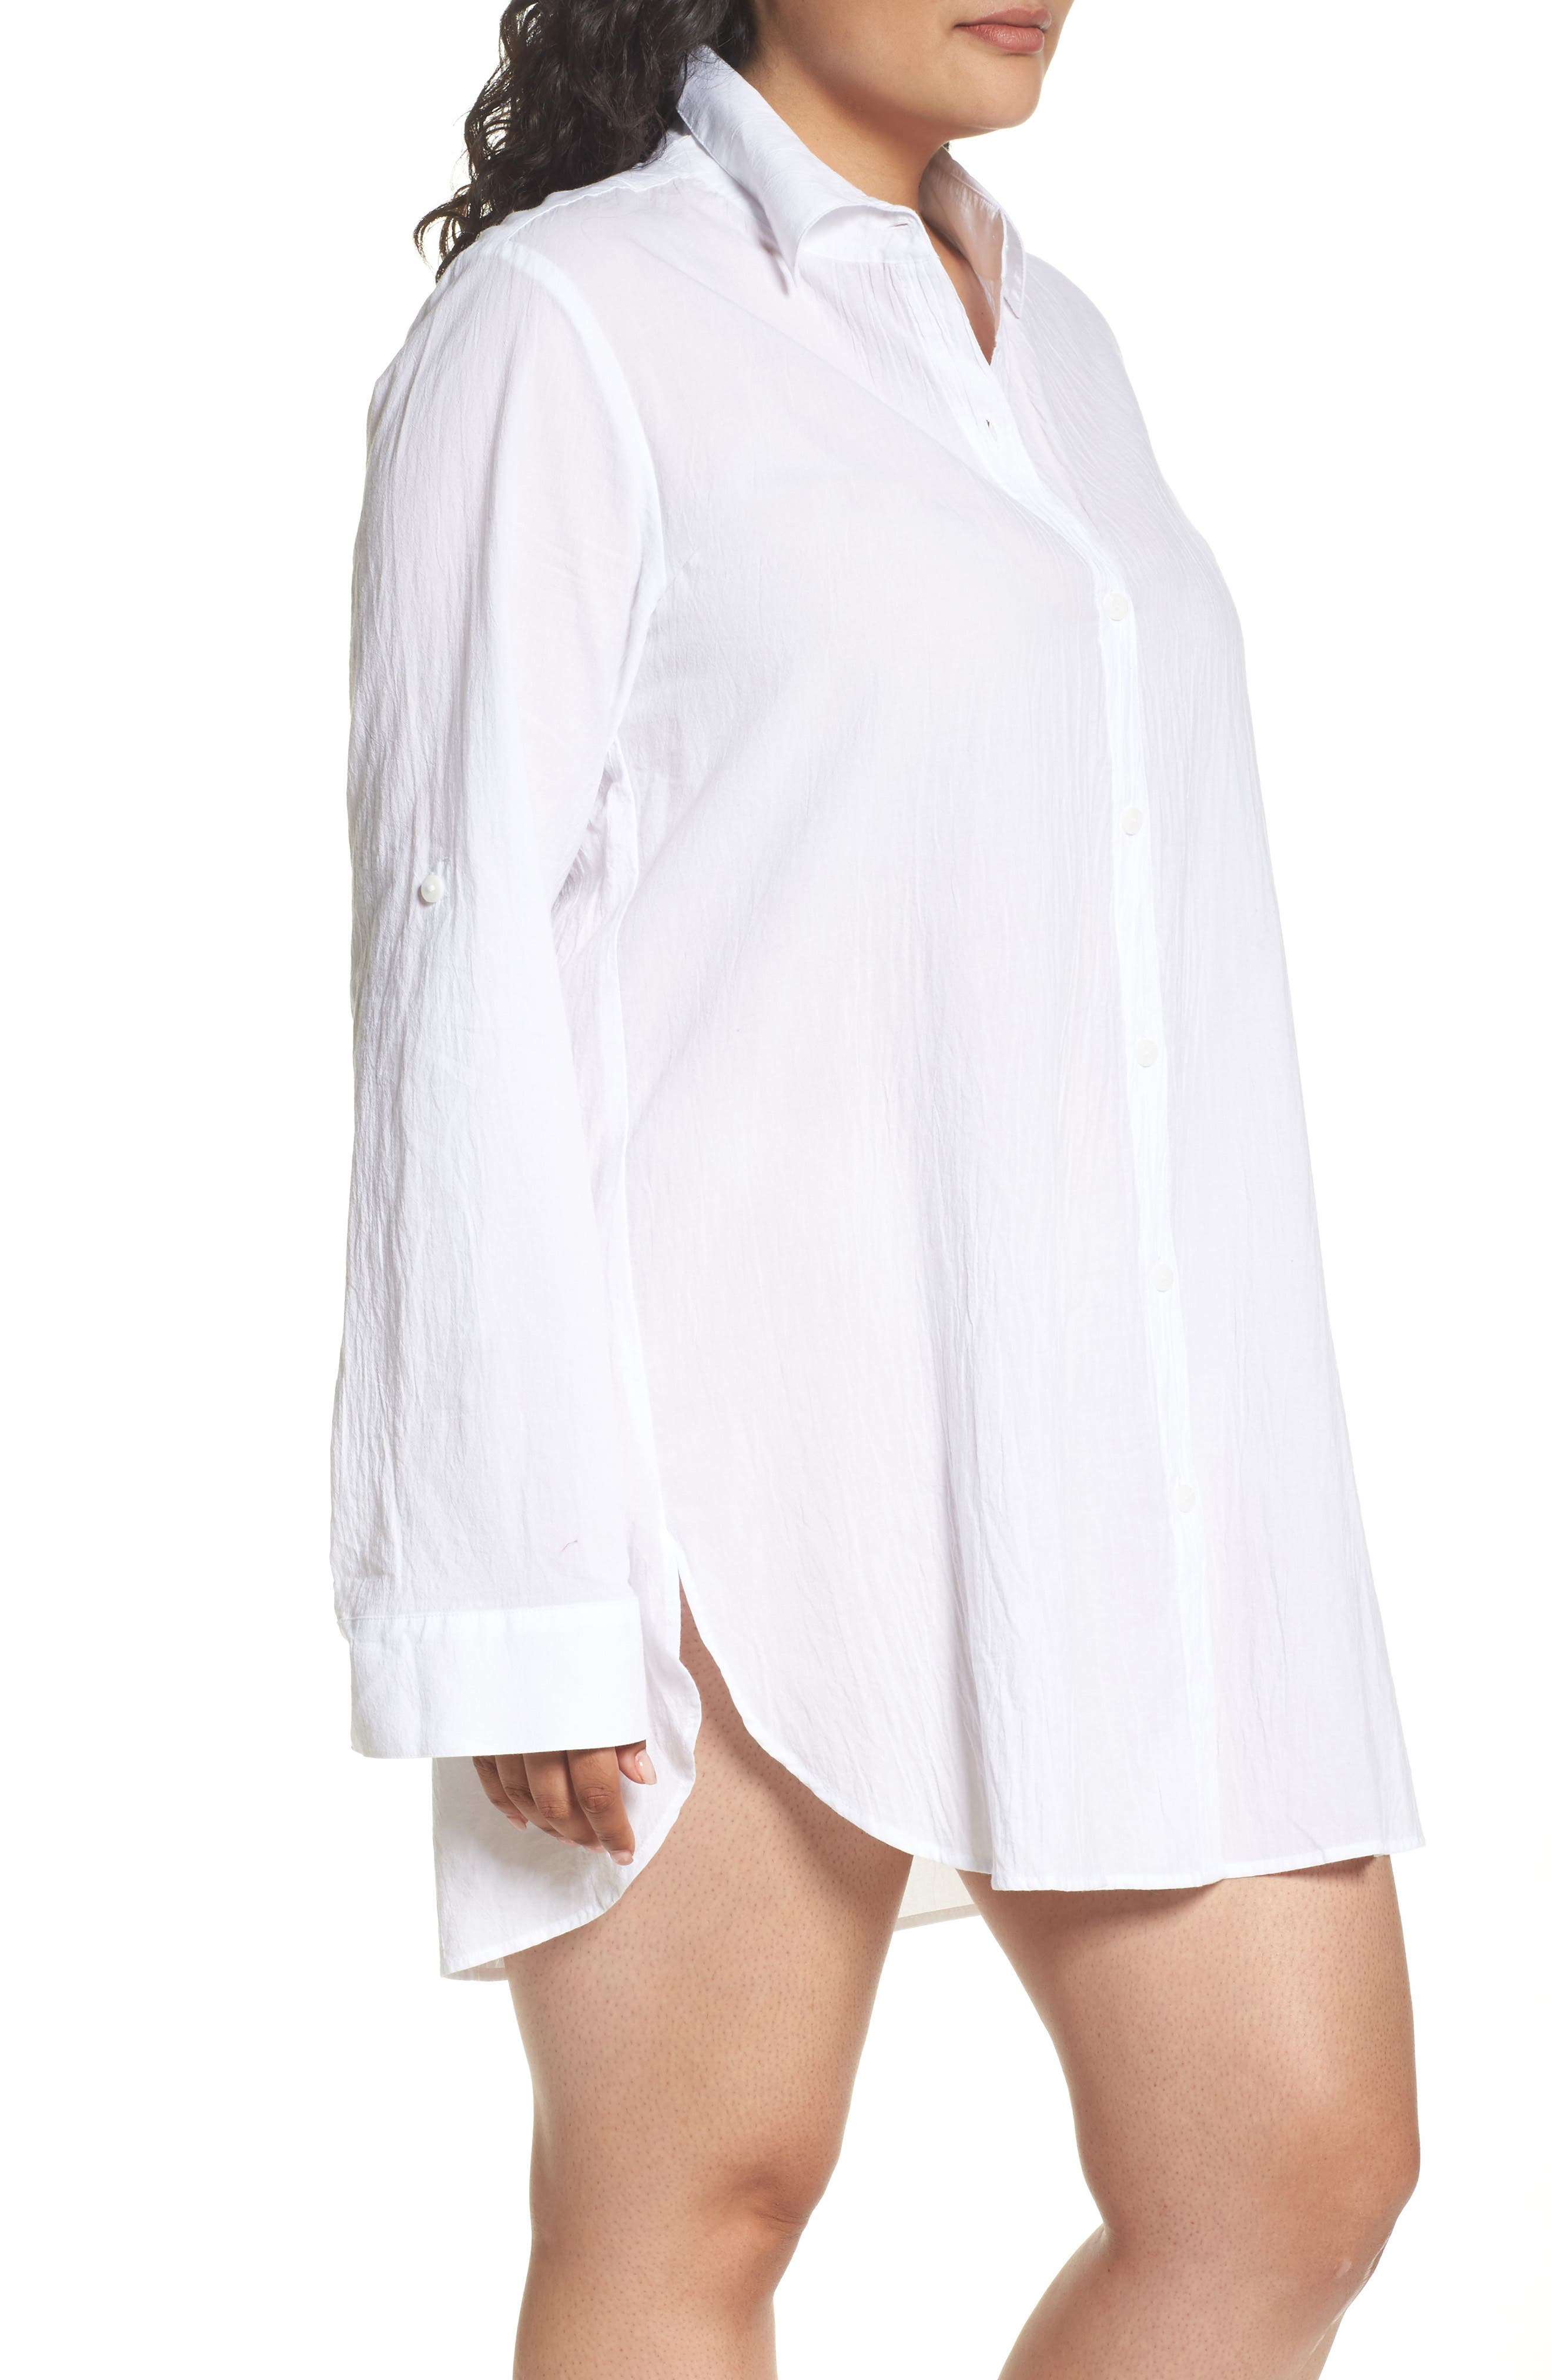 TOMMY BAHAMA,                             Boyfriend Shirt Cover-Up,                             Alternate thumbnail 3, color,                             WHITE